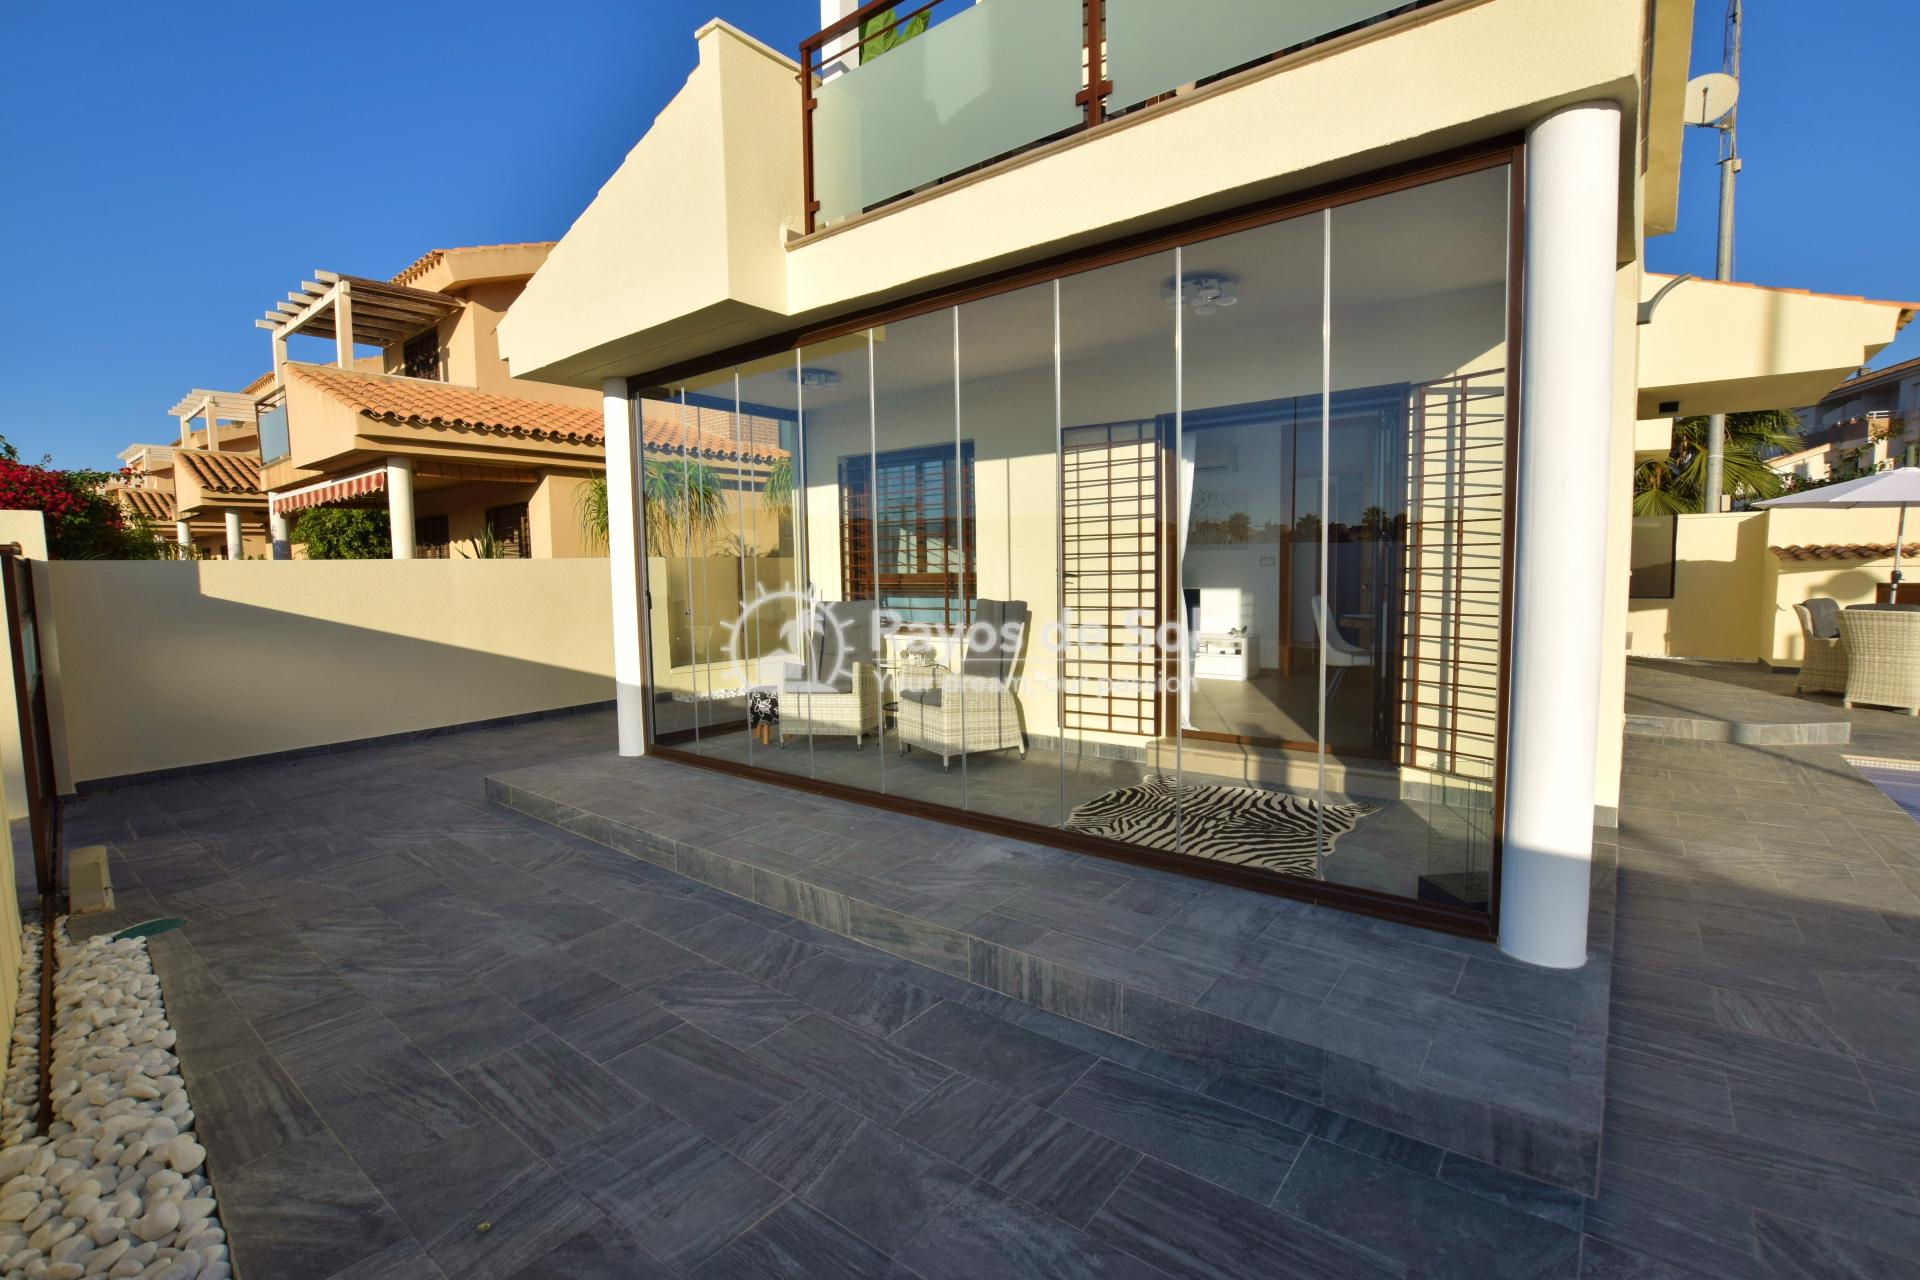 Stunning detached villa  in San Cayetano, Costa Cálida (SCRE0032) - 45